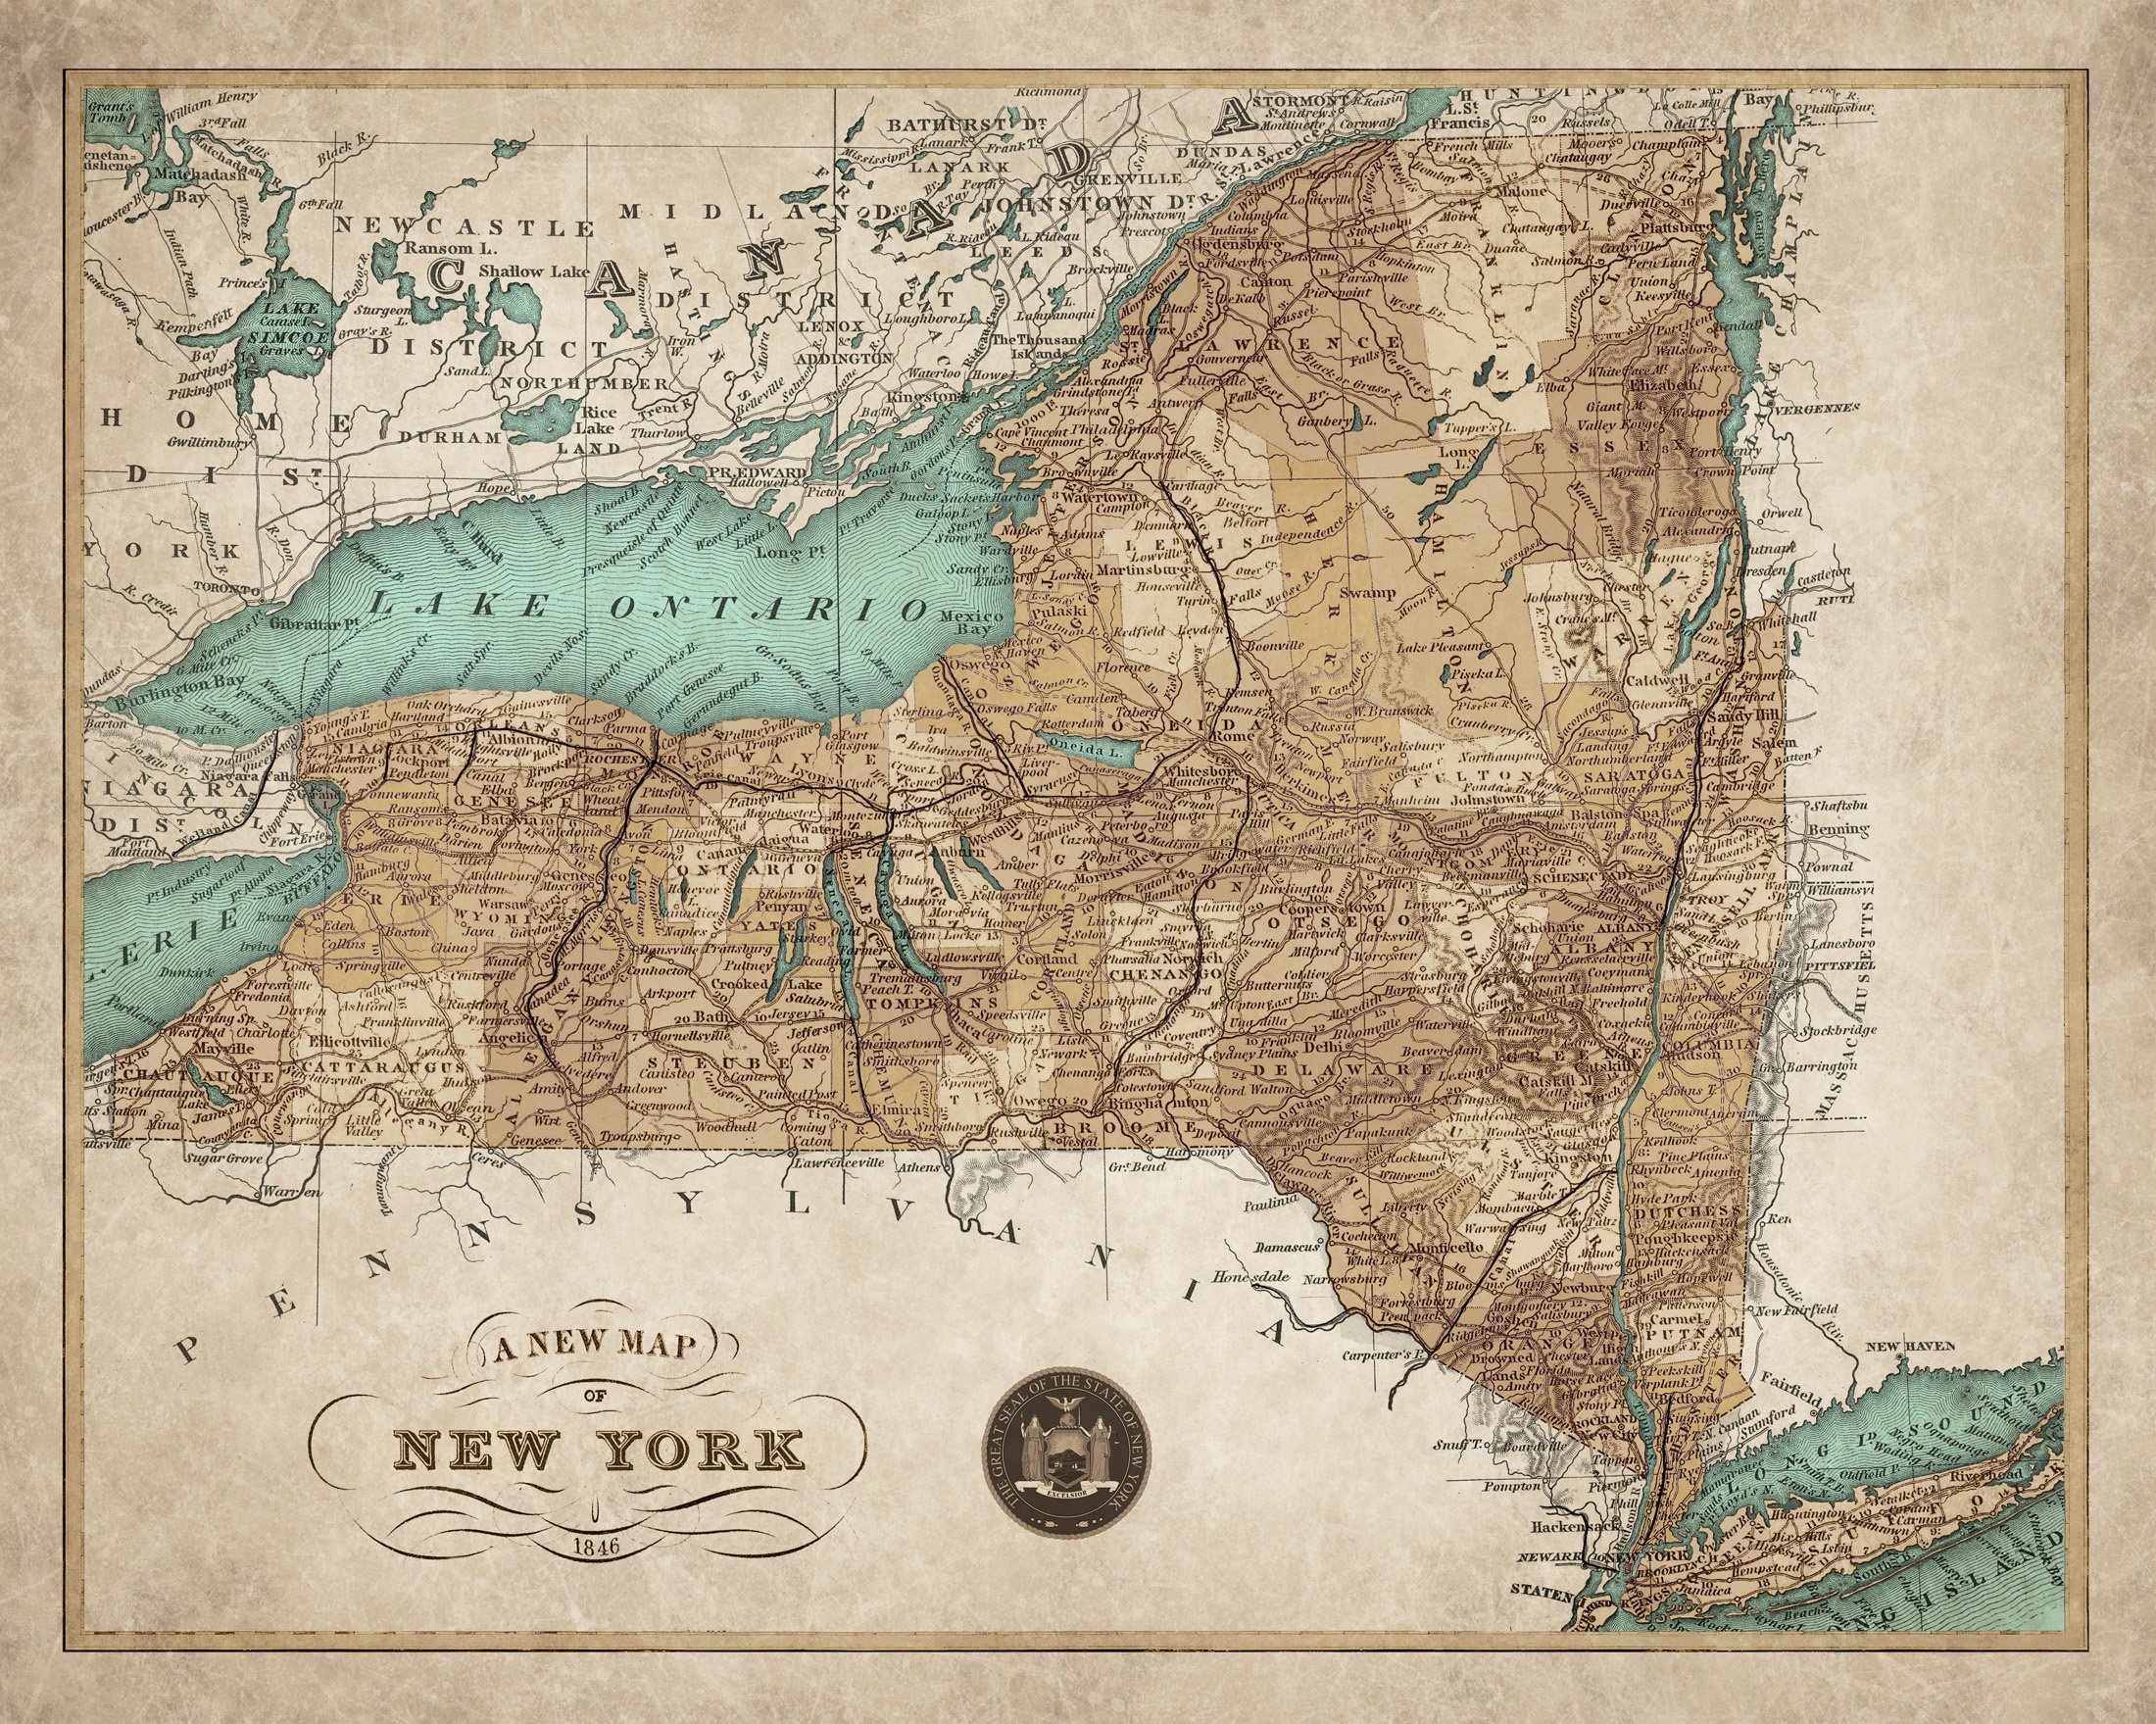 photograph about Printable Maps of New York State called 1846 Map of Contemporary York Country - Substantial-High-quality Giclee Print